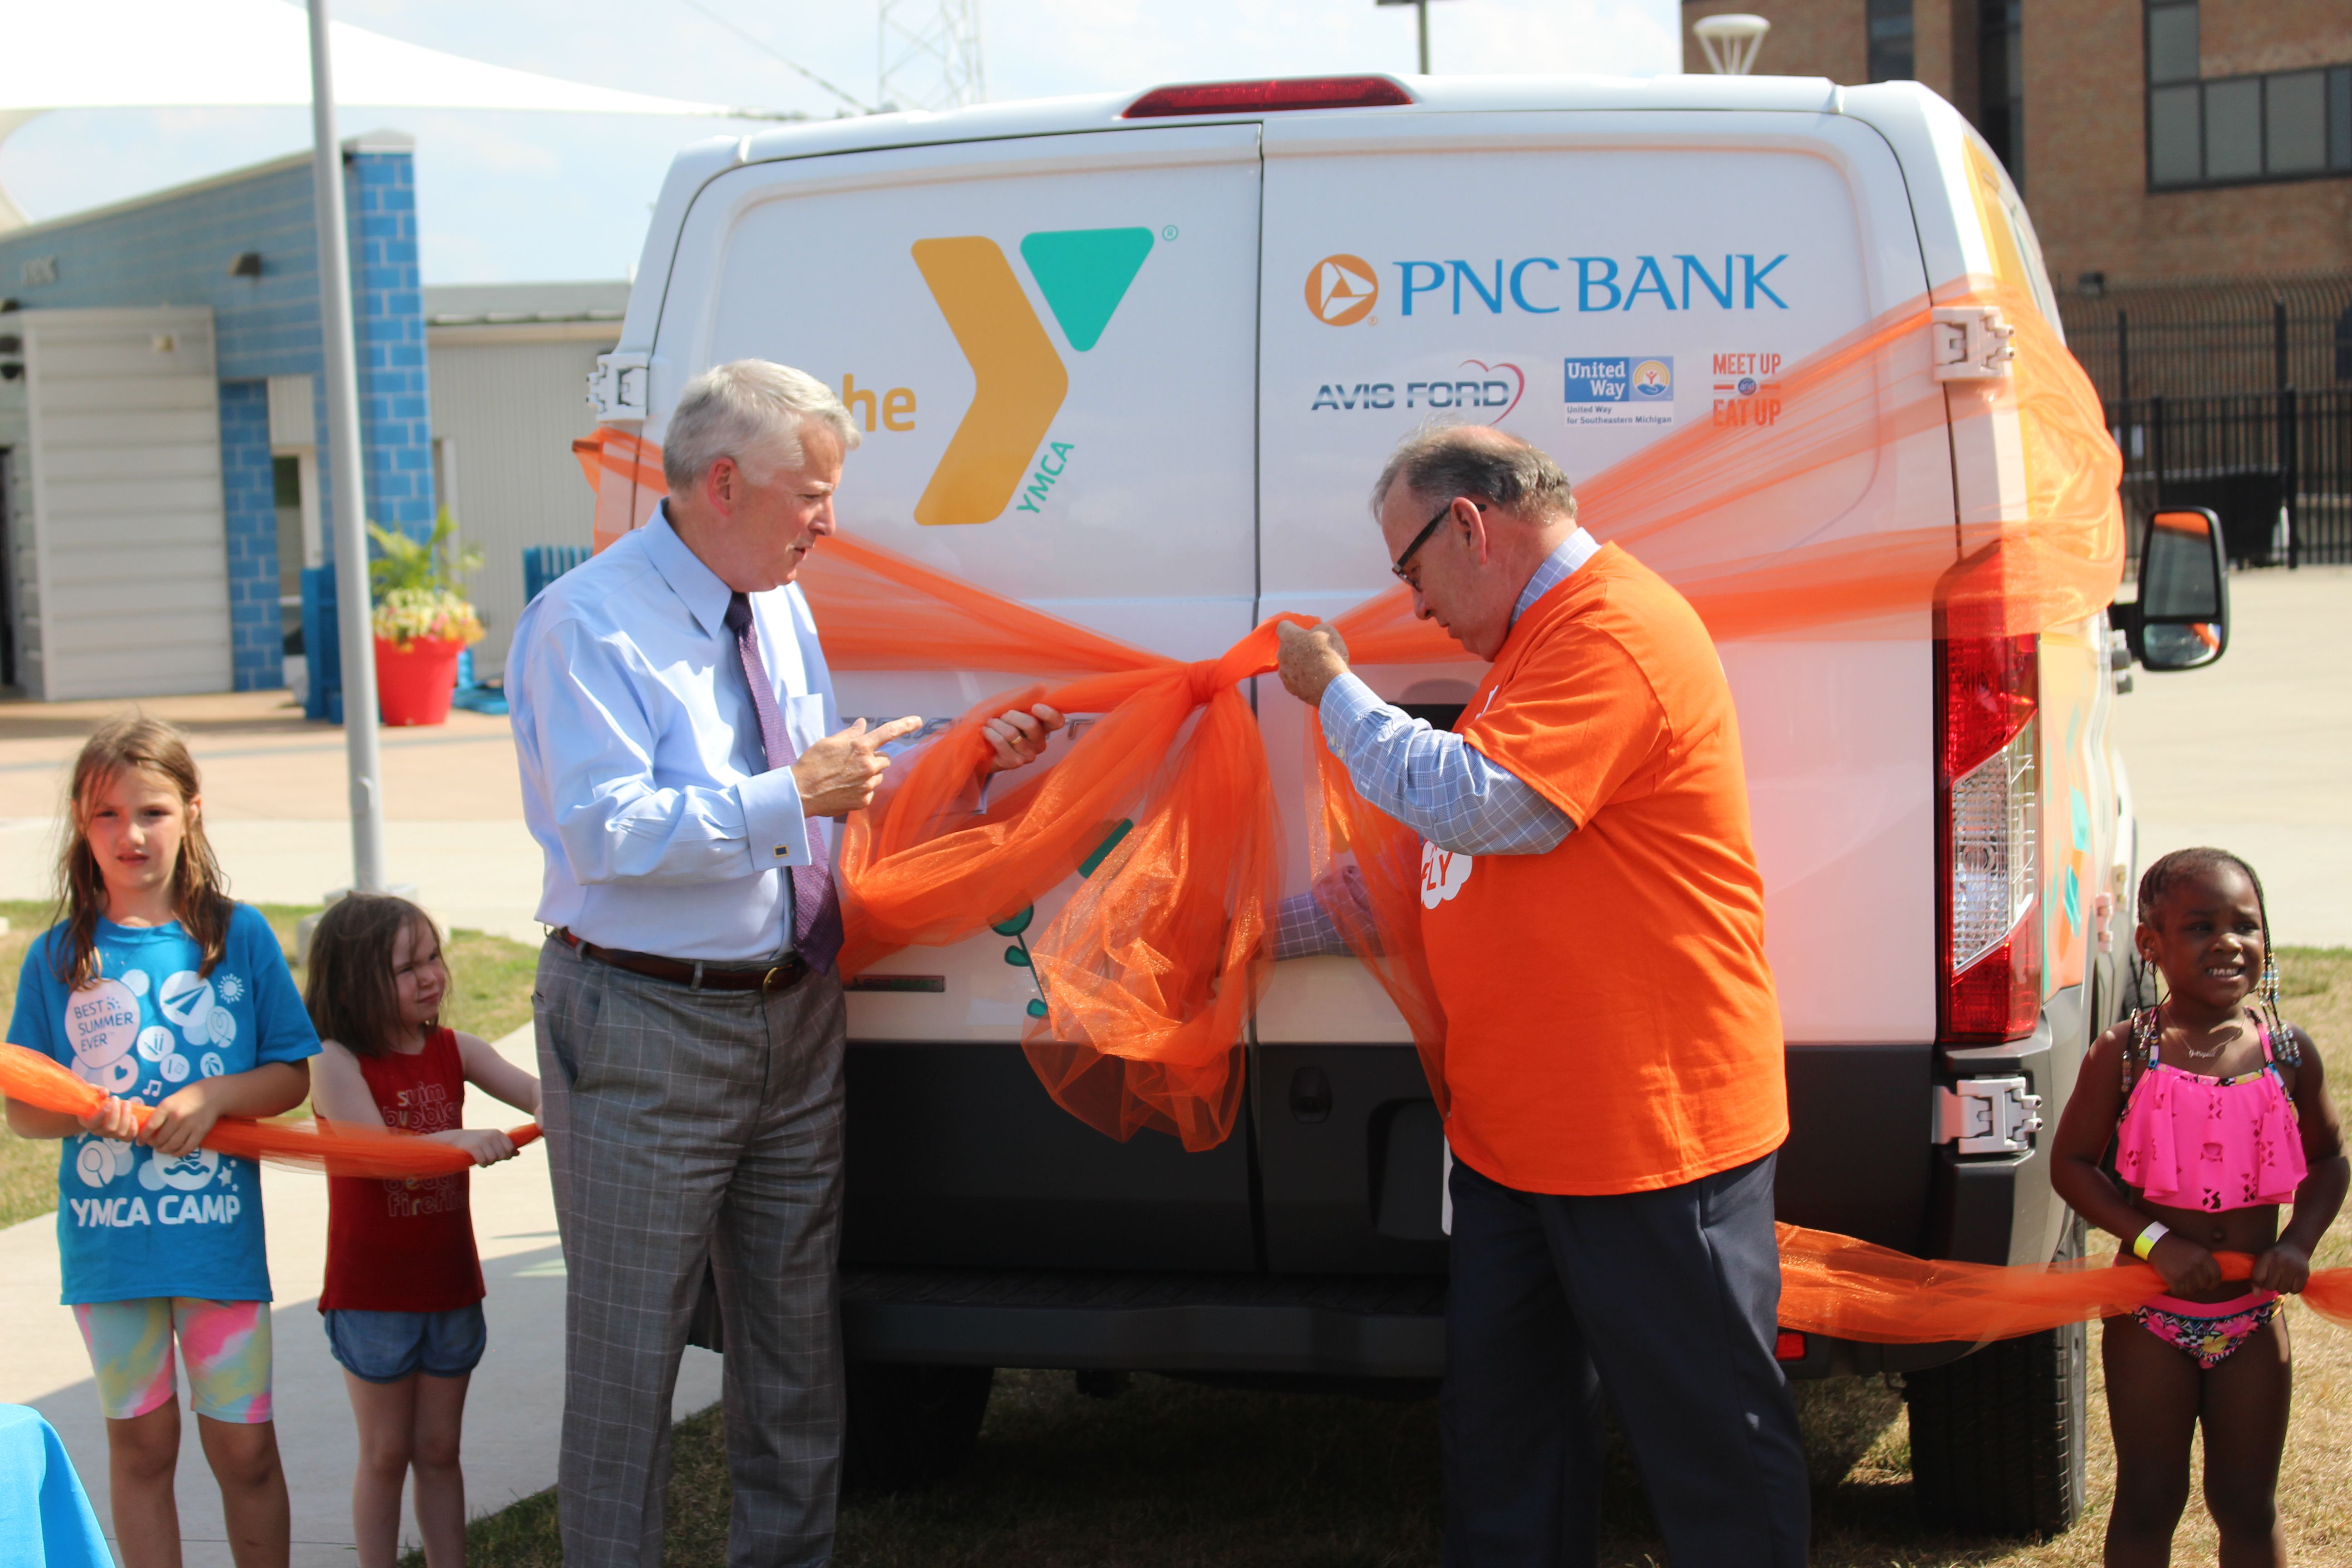 Ric Devore (left) and Scott Landry (right) cutting the ribbon to the new Y on the Fly van in Detroit.